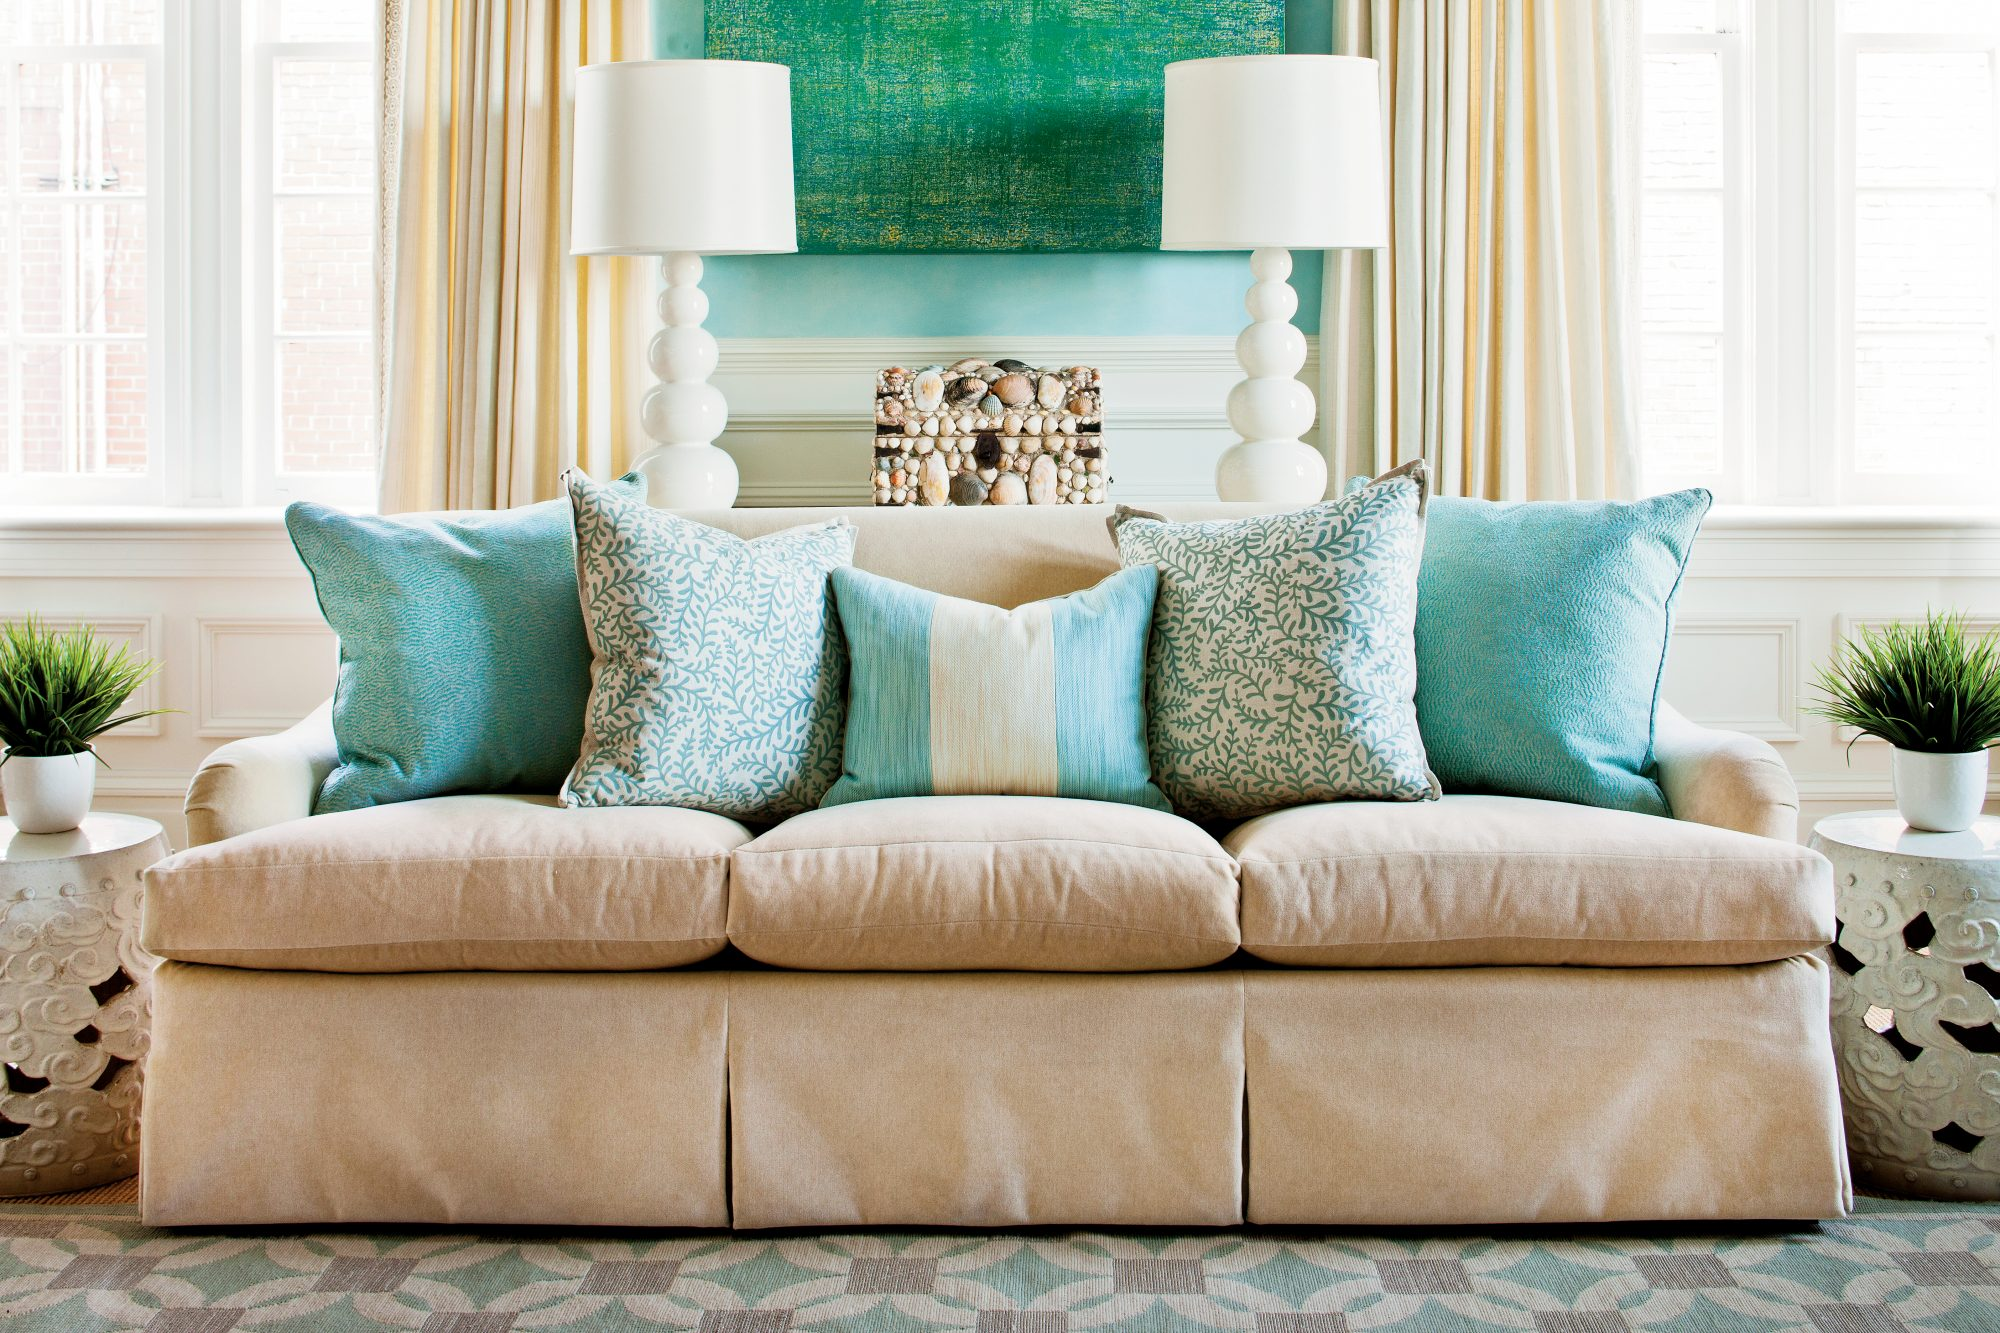 Arrange Sofa Pillows